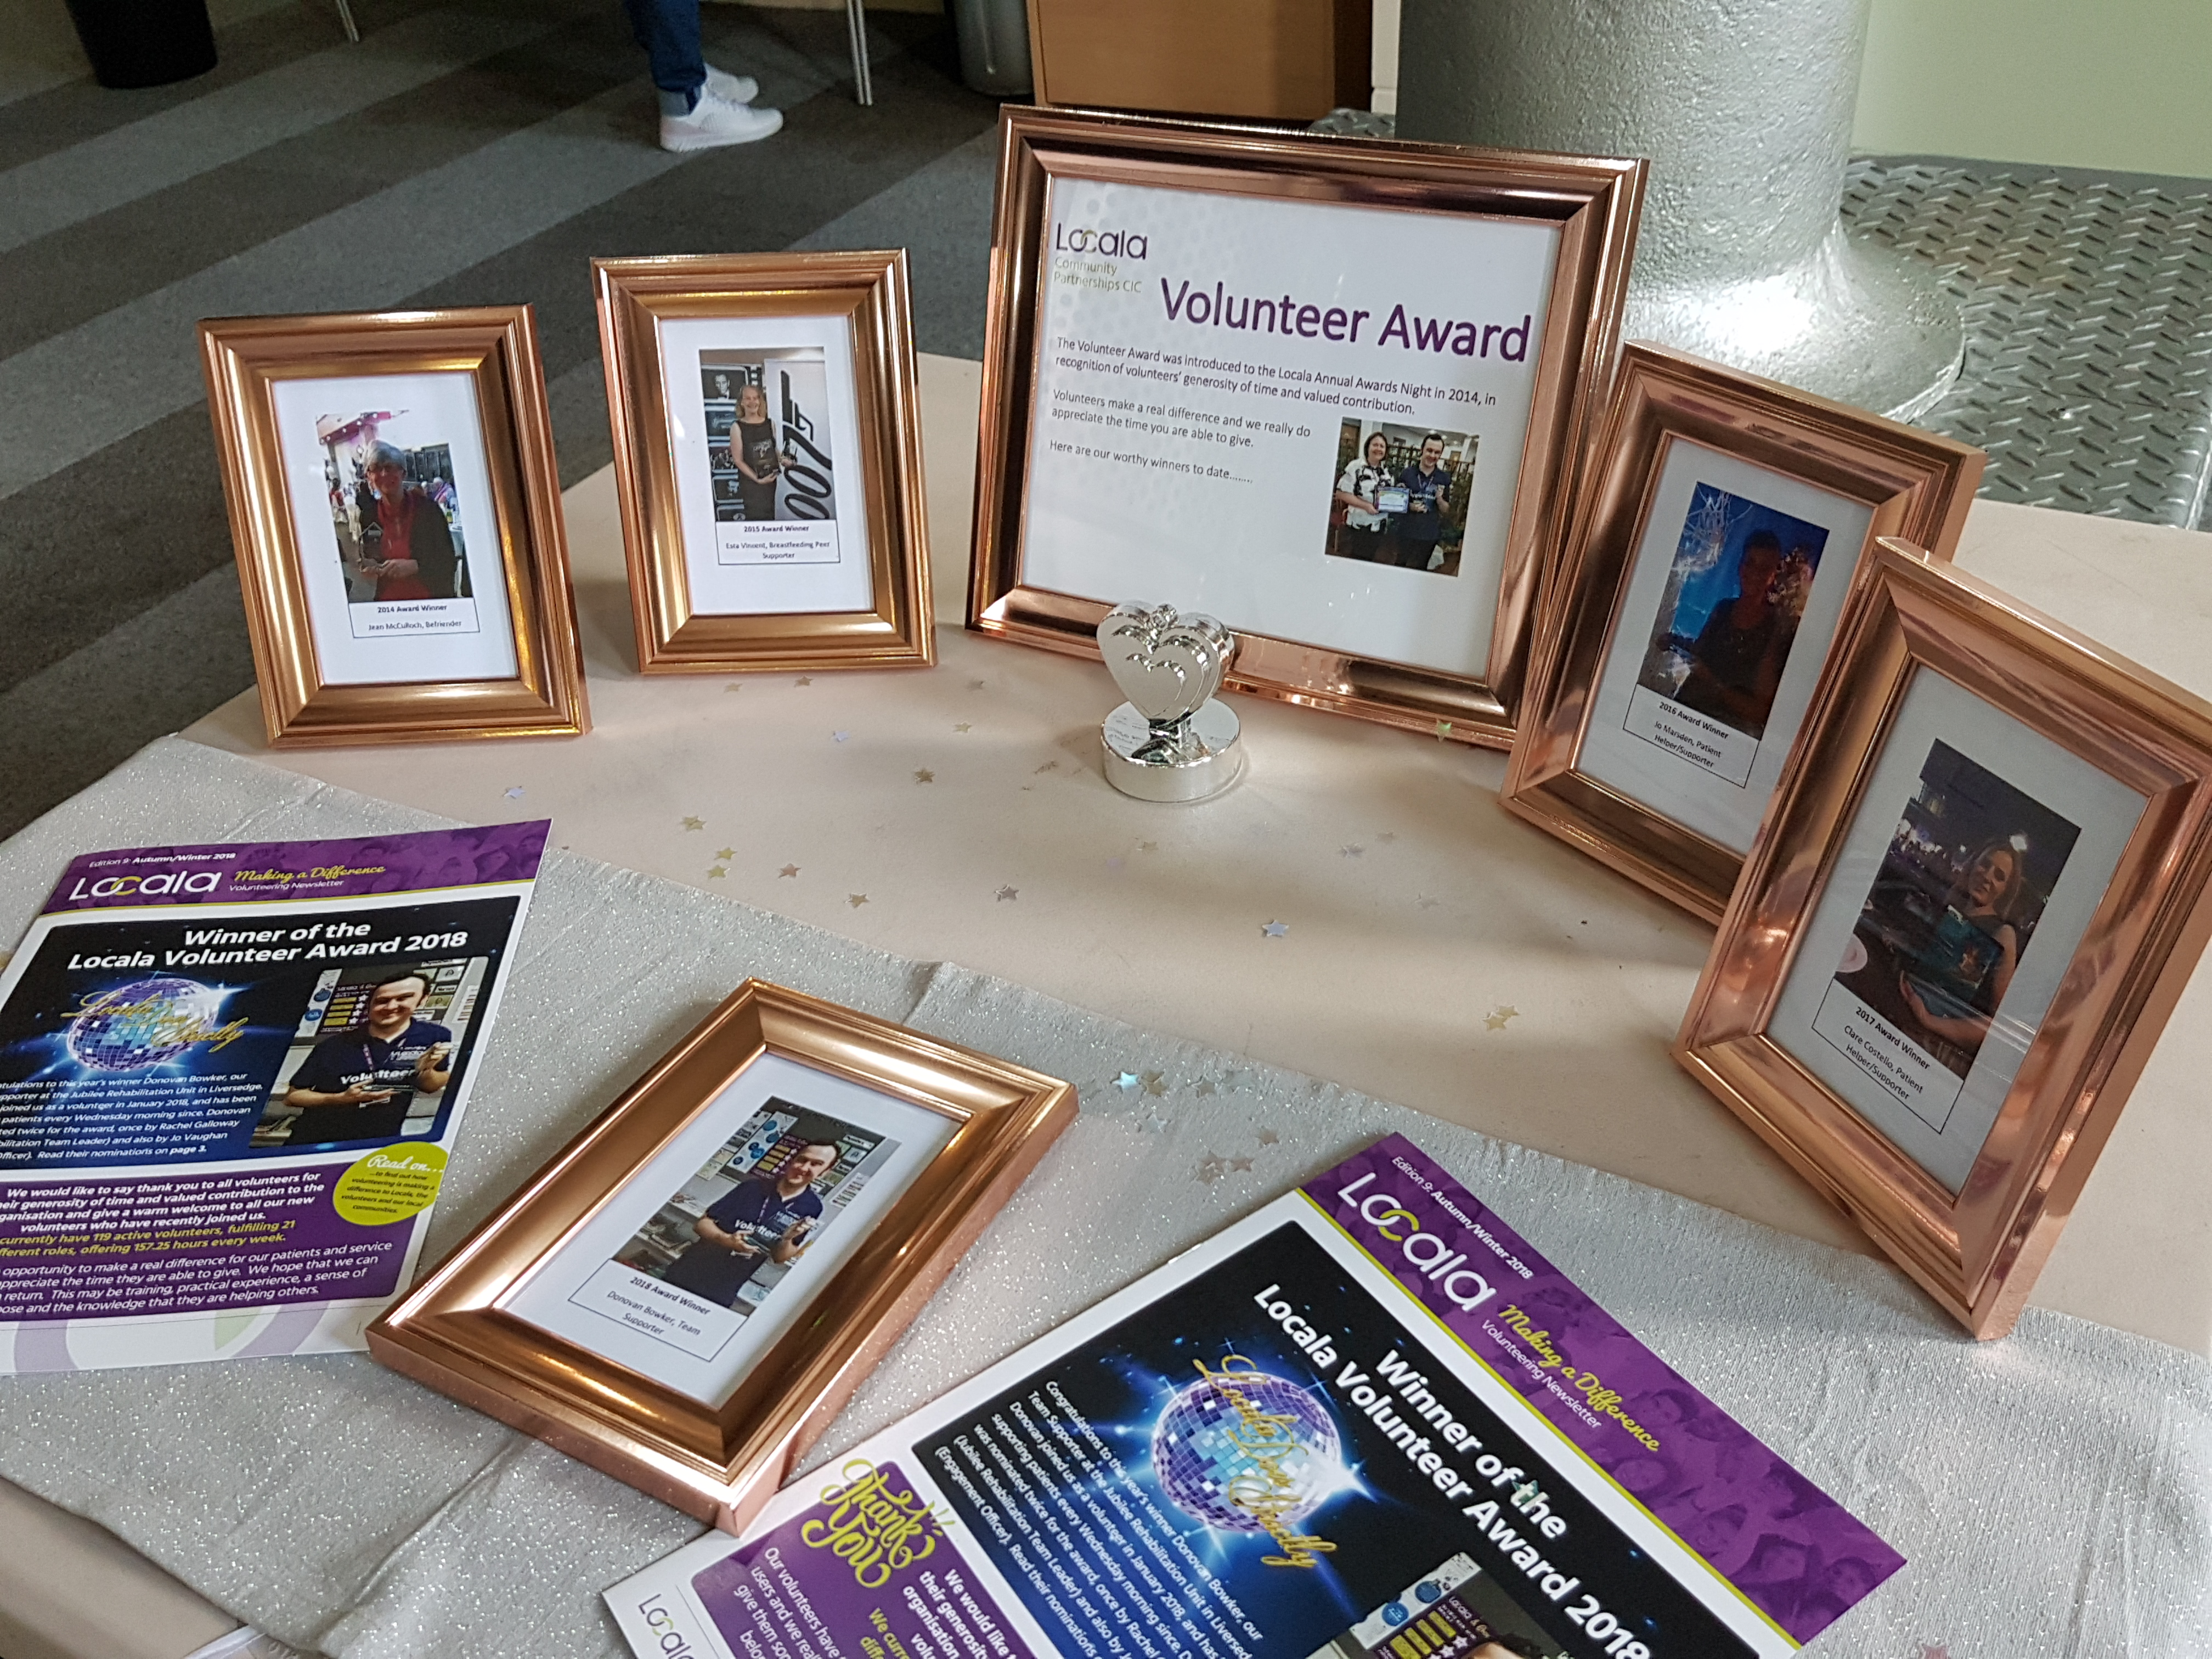 Awards given to volunteers